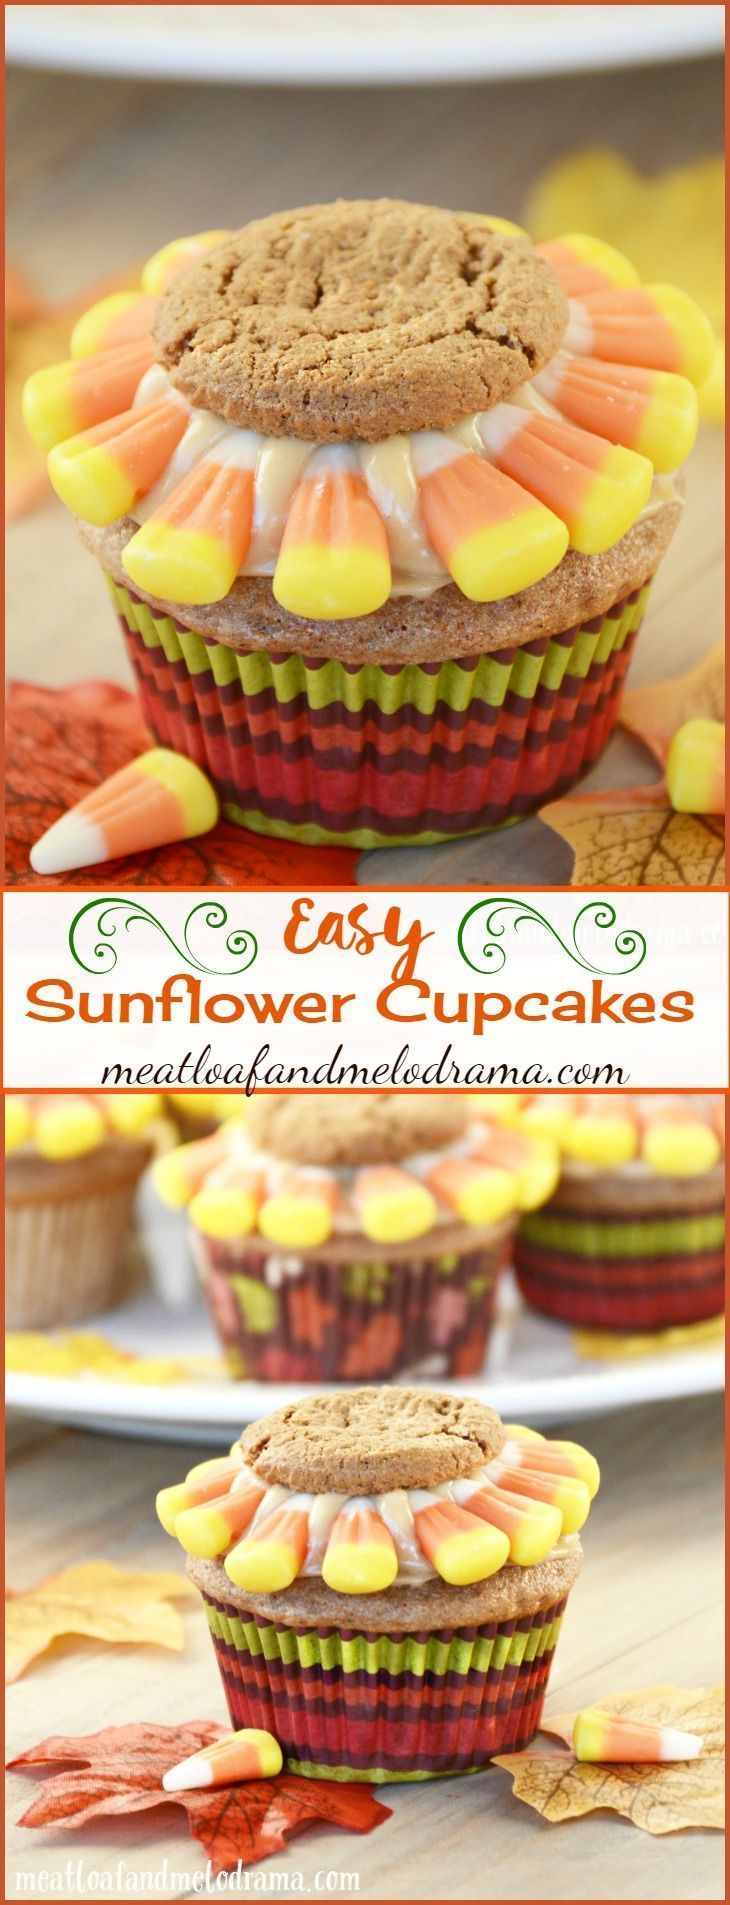 Easy Sunflower Cupcakes #sunflowercupcakes Easy Sunflower Cupcakes made with spice cake mix and decorated with gingersnaps and candy corn. An easy fall or Thanksgiving dessert! #sunflowercupcakes Easy Sunflower Cupcakes #sunflowercupcakes Easy Sunflower Cupcakes made with spice cake mix and decorated with gingersnaps and candy corn. An easy fall or Thanksgiving dessert! #sunflowercupcakes